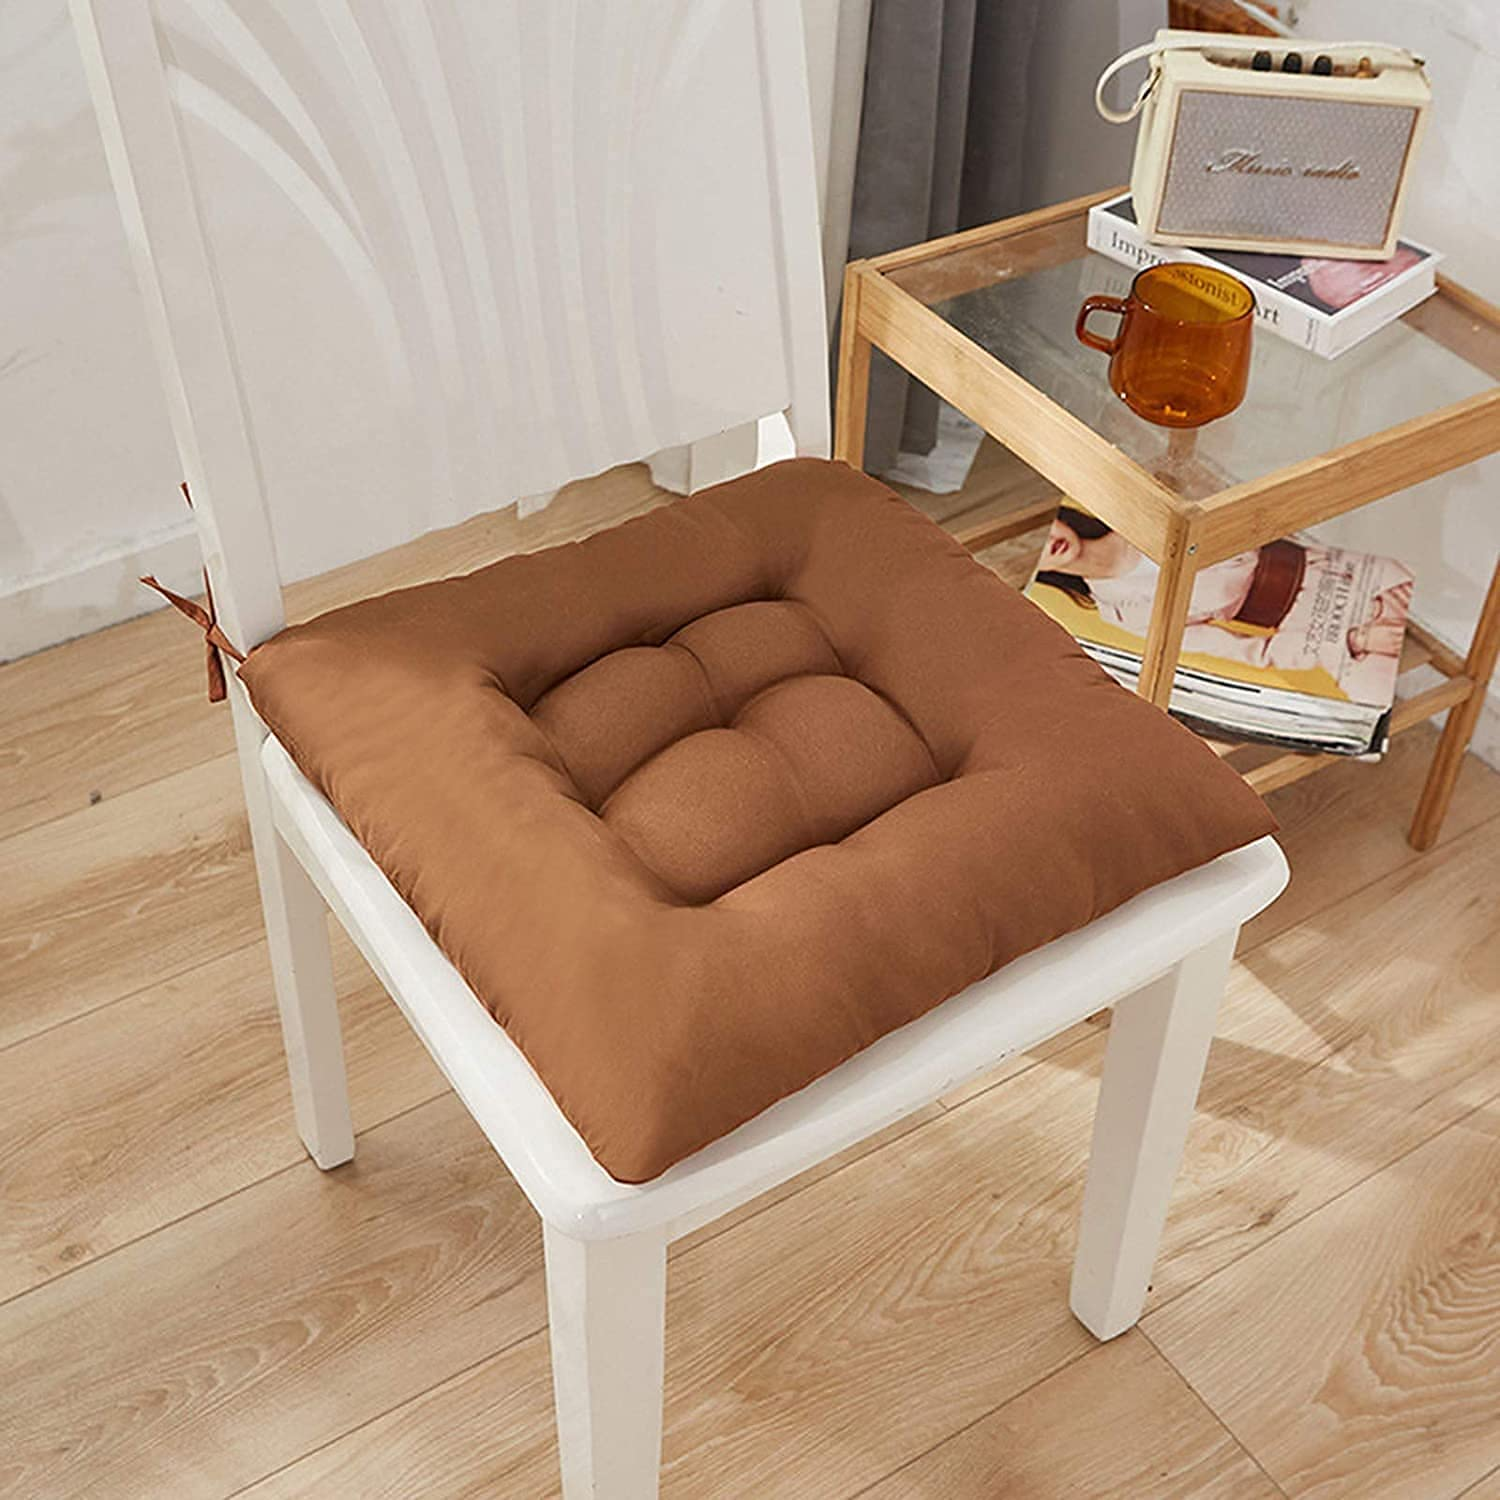 wwqasdfv Comfortable Indoor Outdoor Chair C Soft All items free shipping Cushions Square Memphis Mall